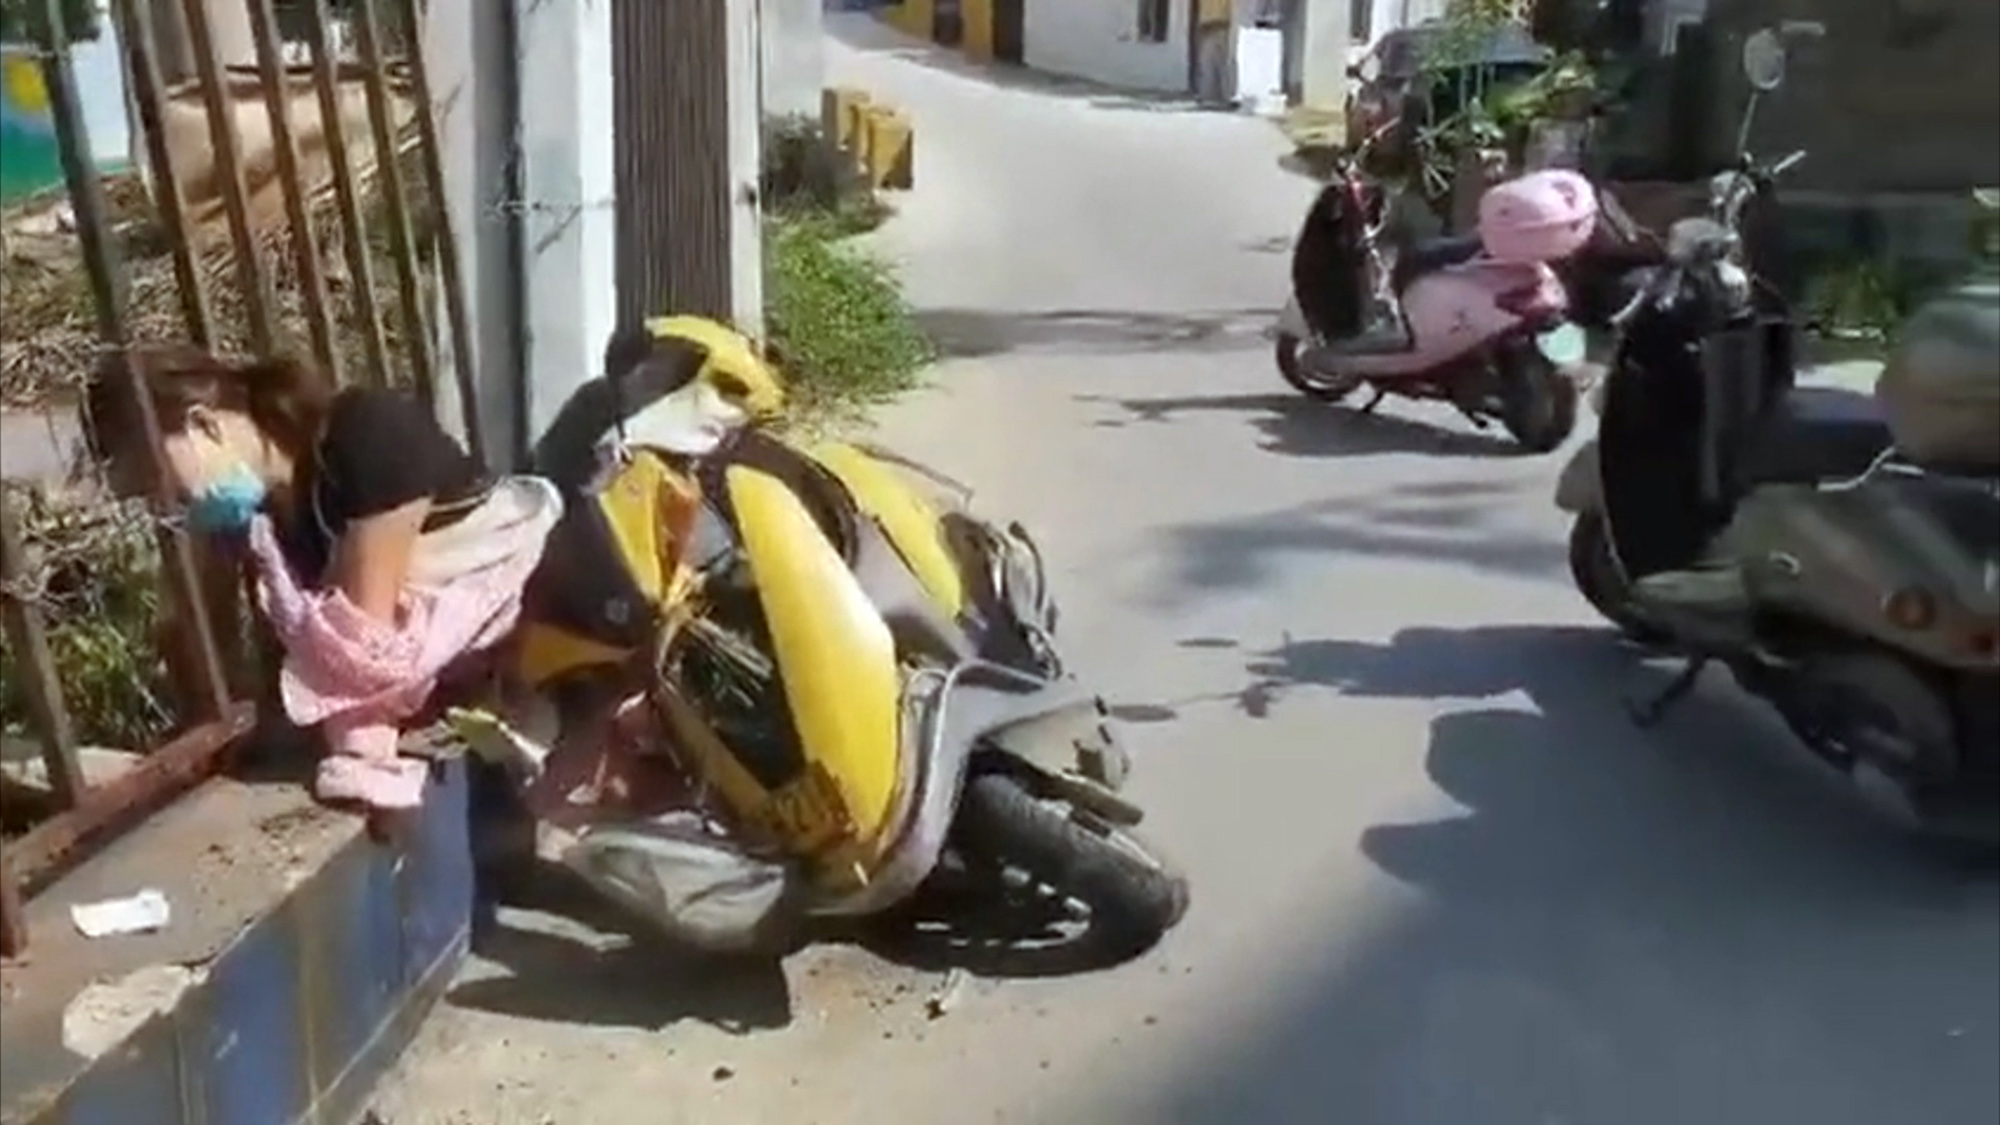 Chinese woman falls off scooter, gets head stuck in fence